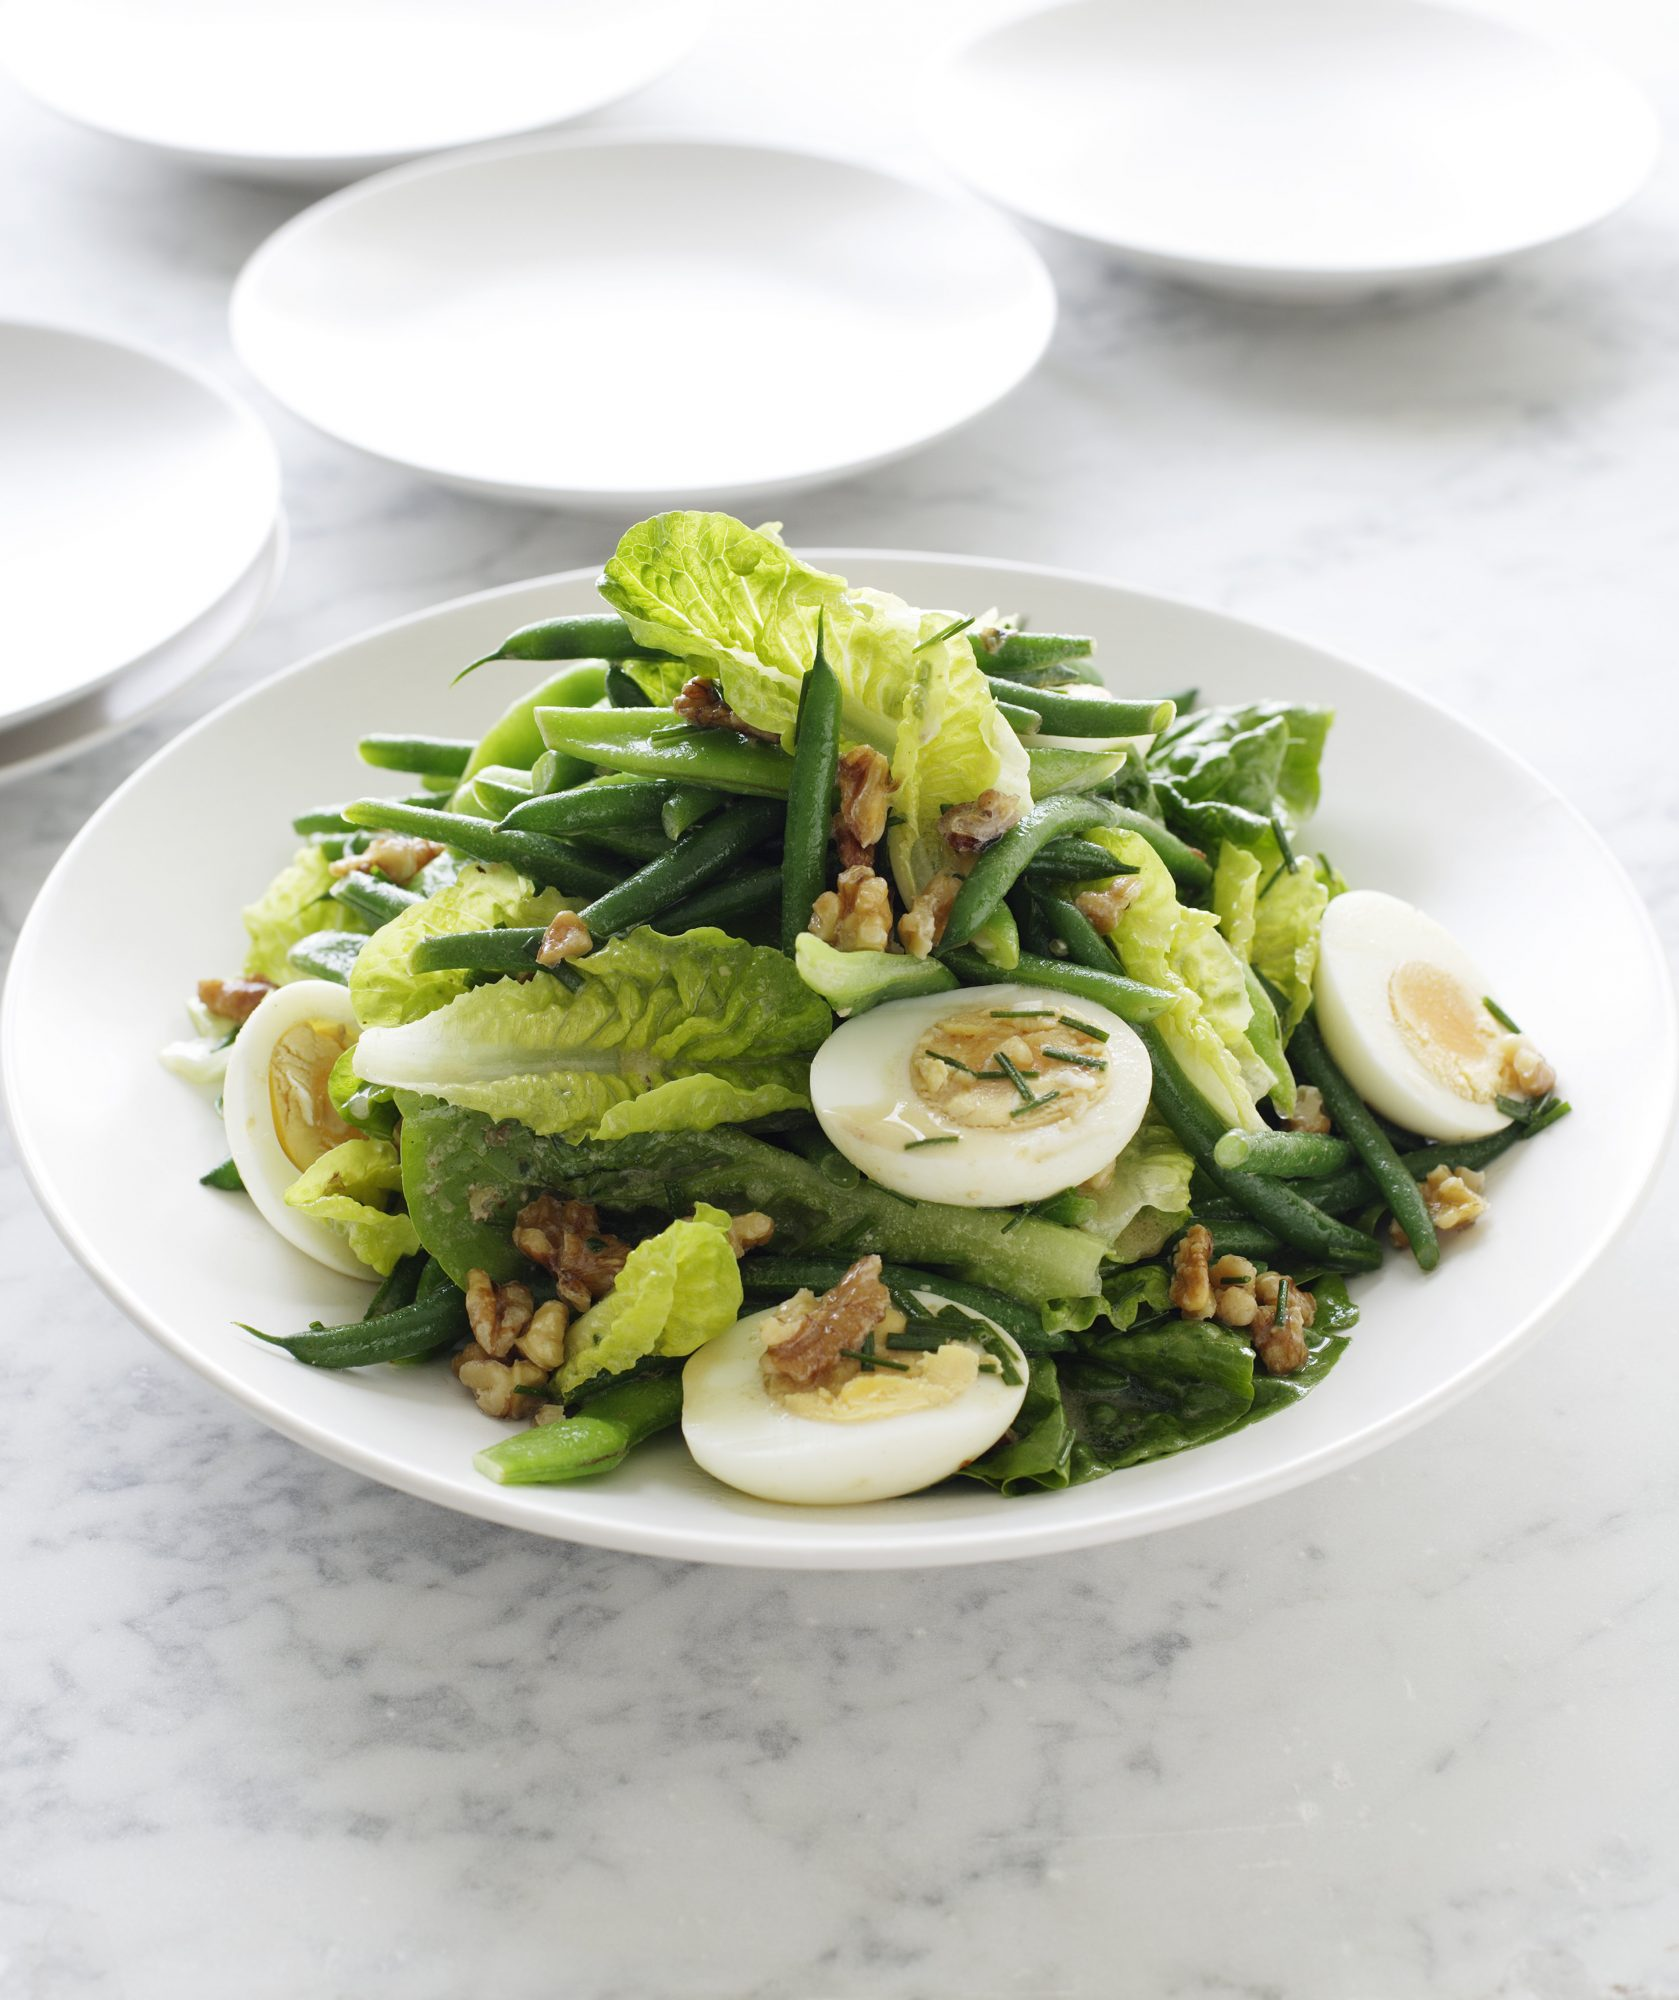 Egg in Salad on White Dish